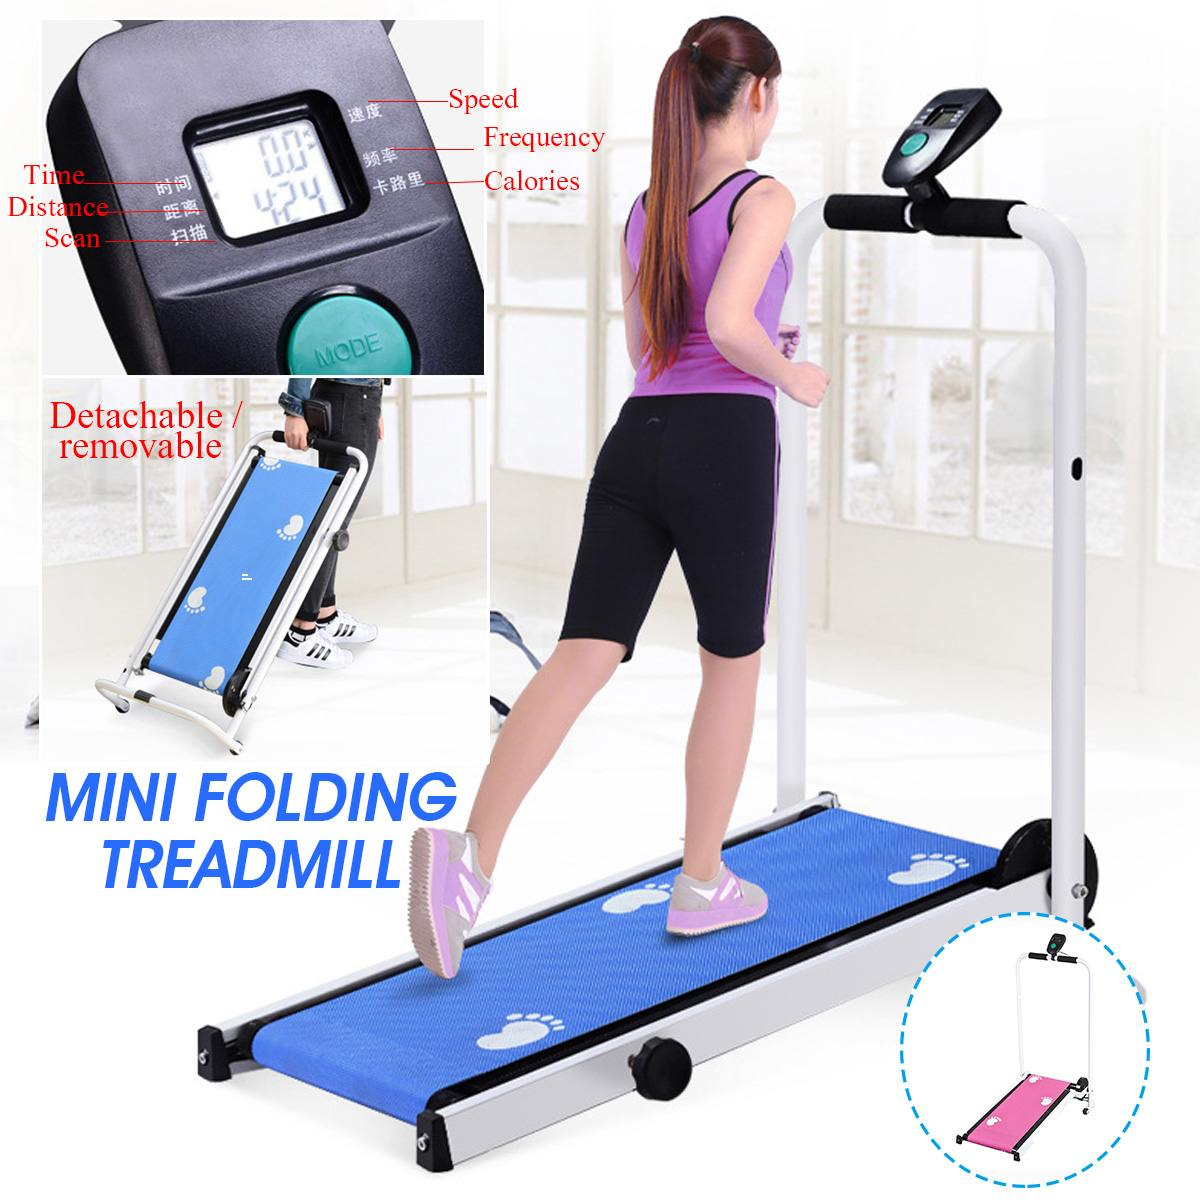 Multifunction Mini Folding Treadmill LED Display Fitness Home Sport Machine 90 ° Collapsible No Floor Space Mobile Roller